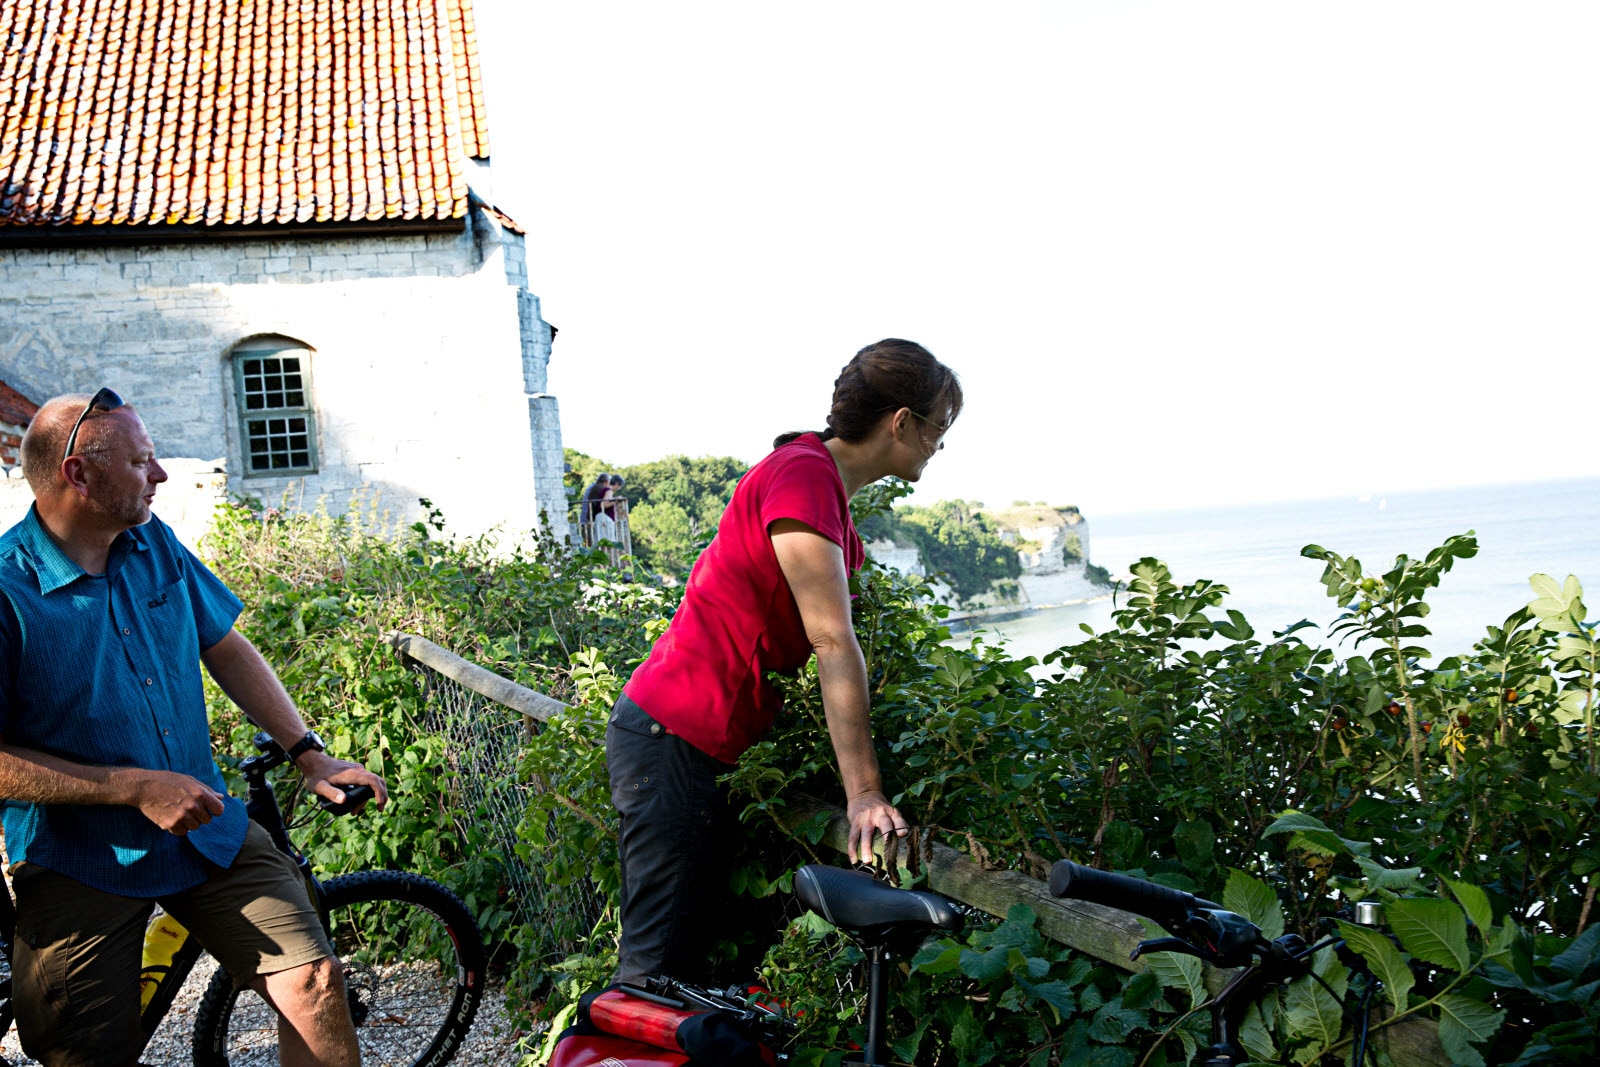 Bicycles at Stevns Klint